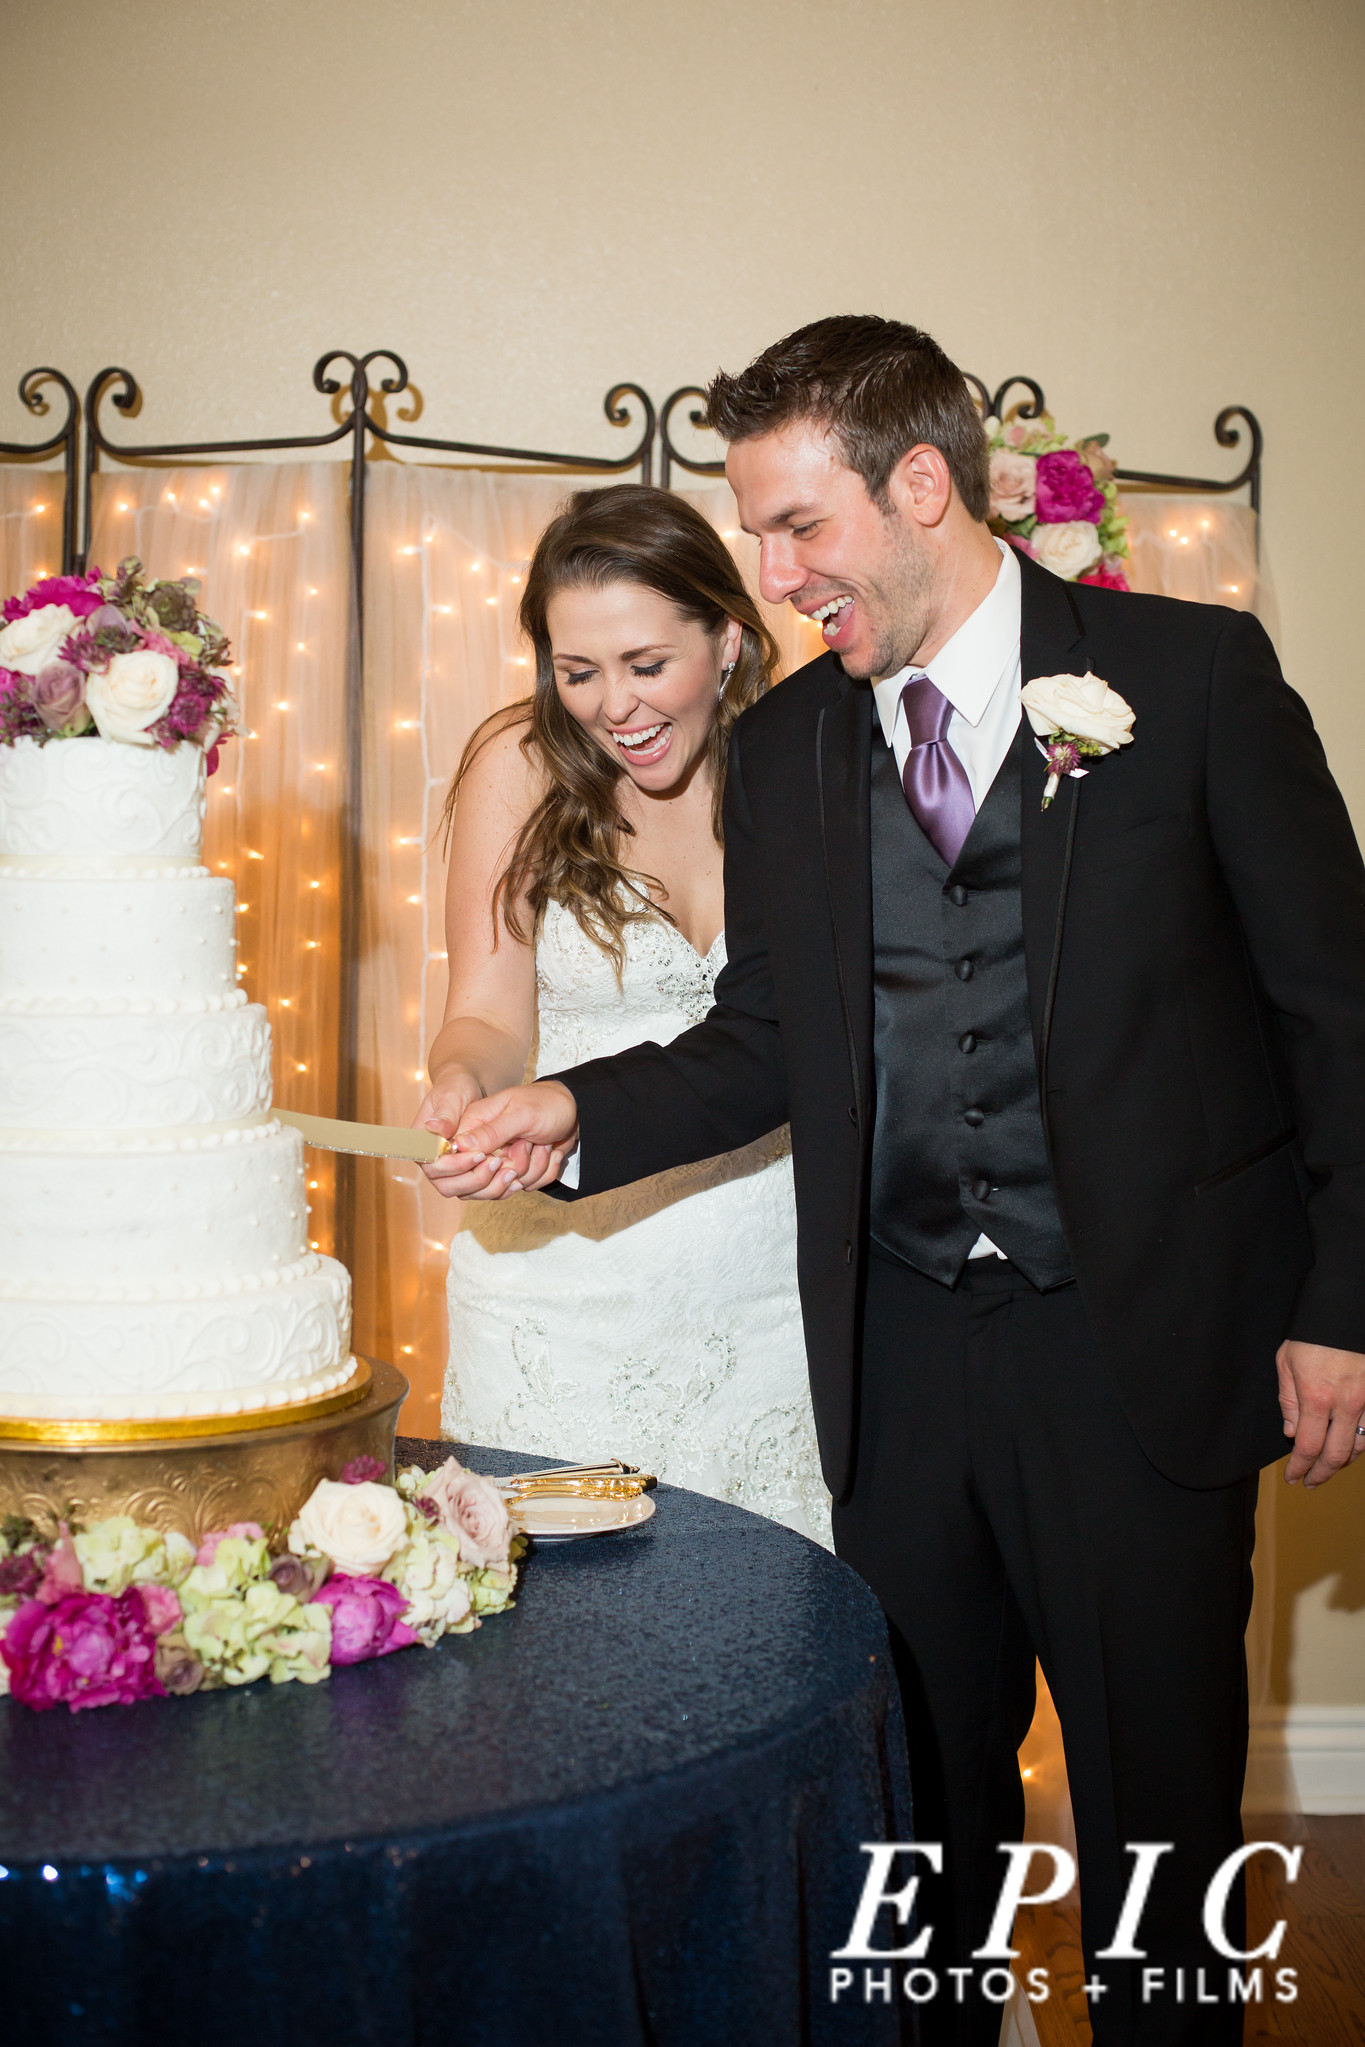 bride and groom smiling as they cut their wedding cake